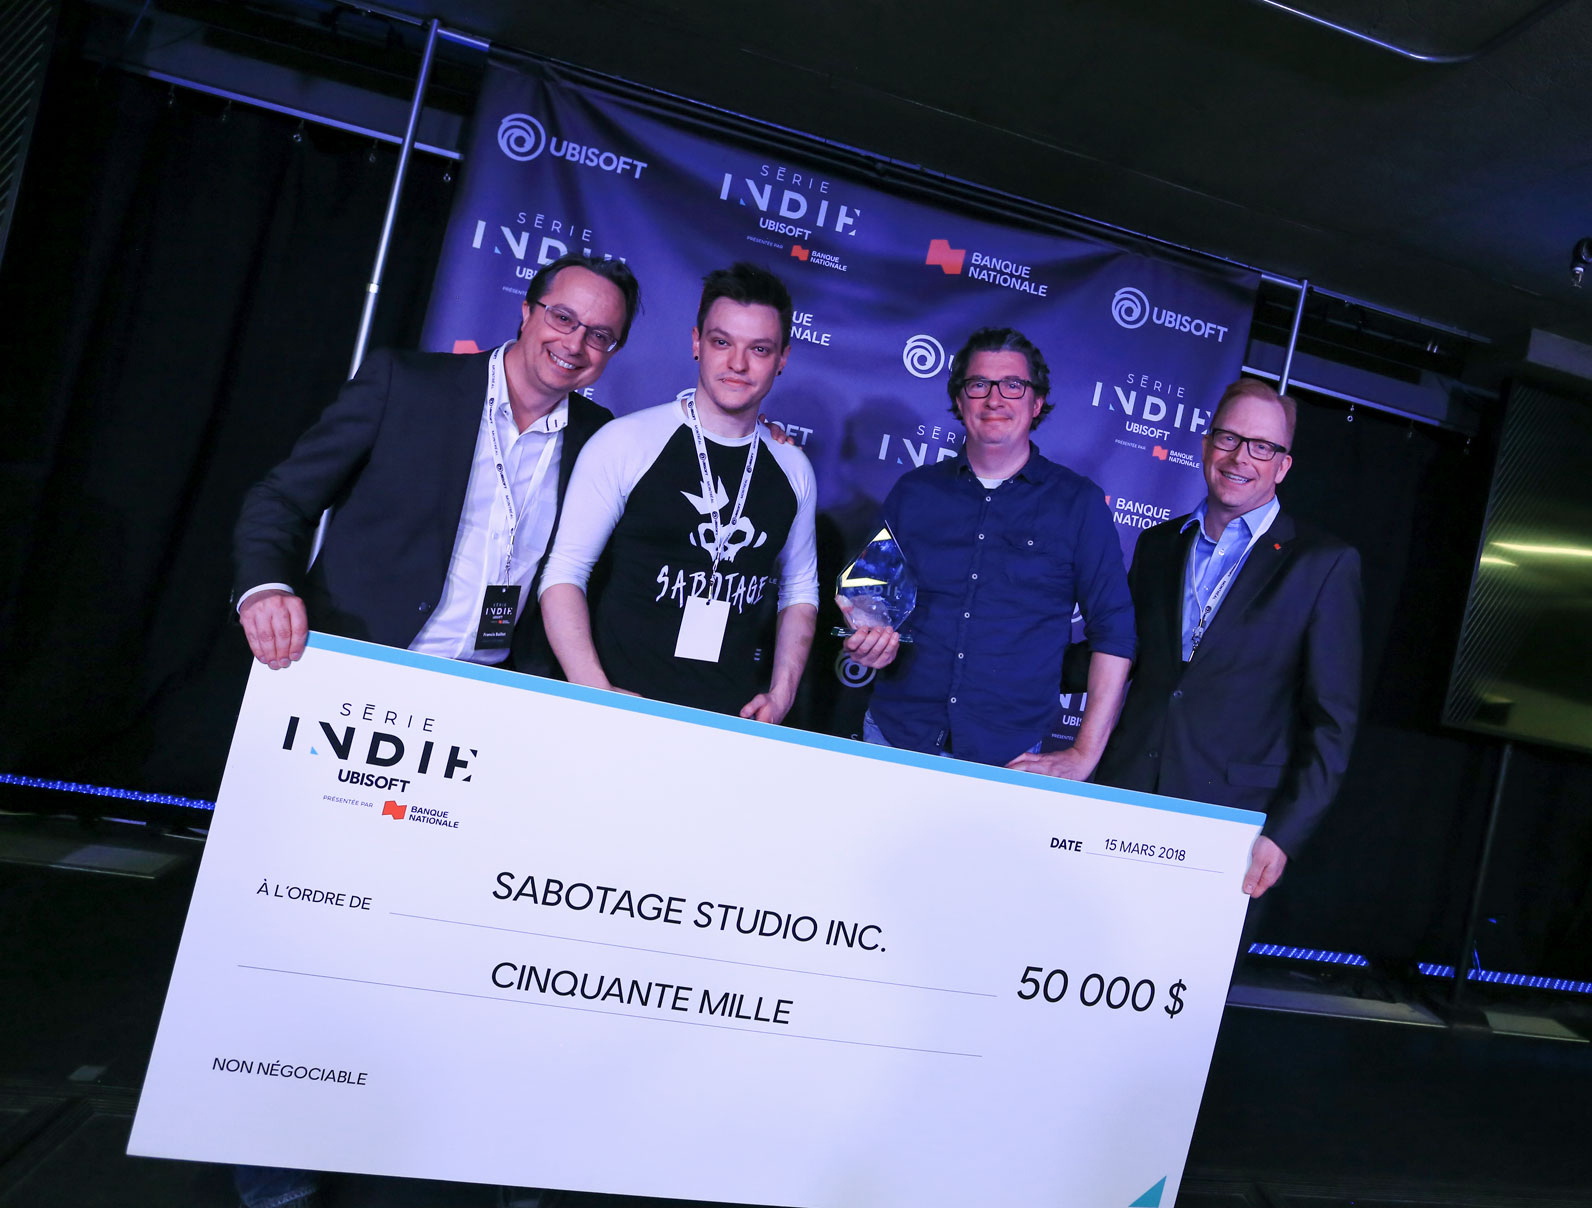 Interview with Sabotage studio, winners of the Ubisoft indie Series 2018